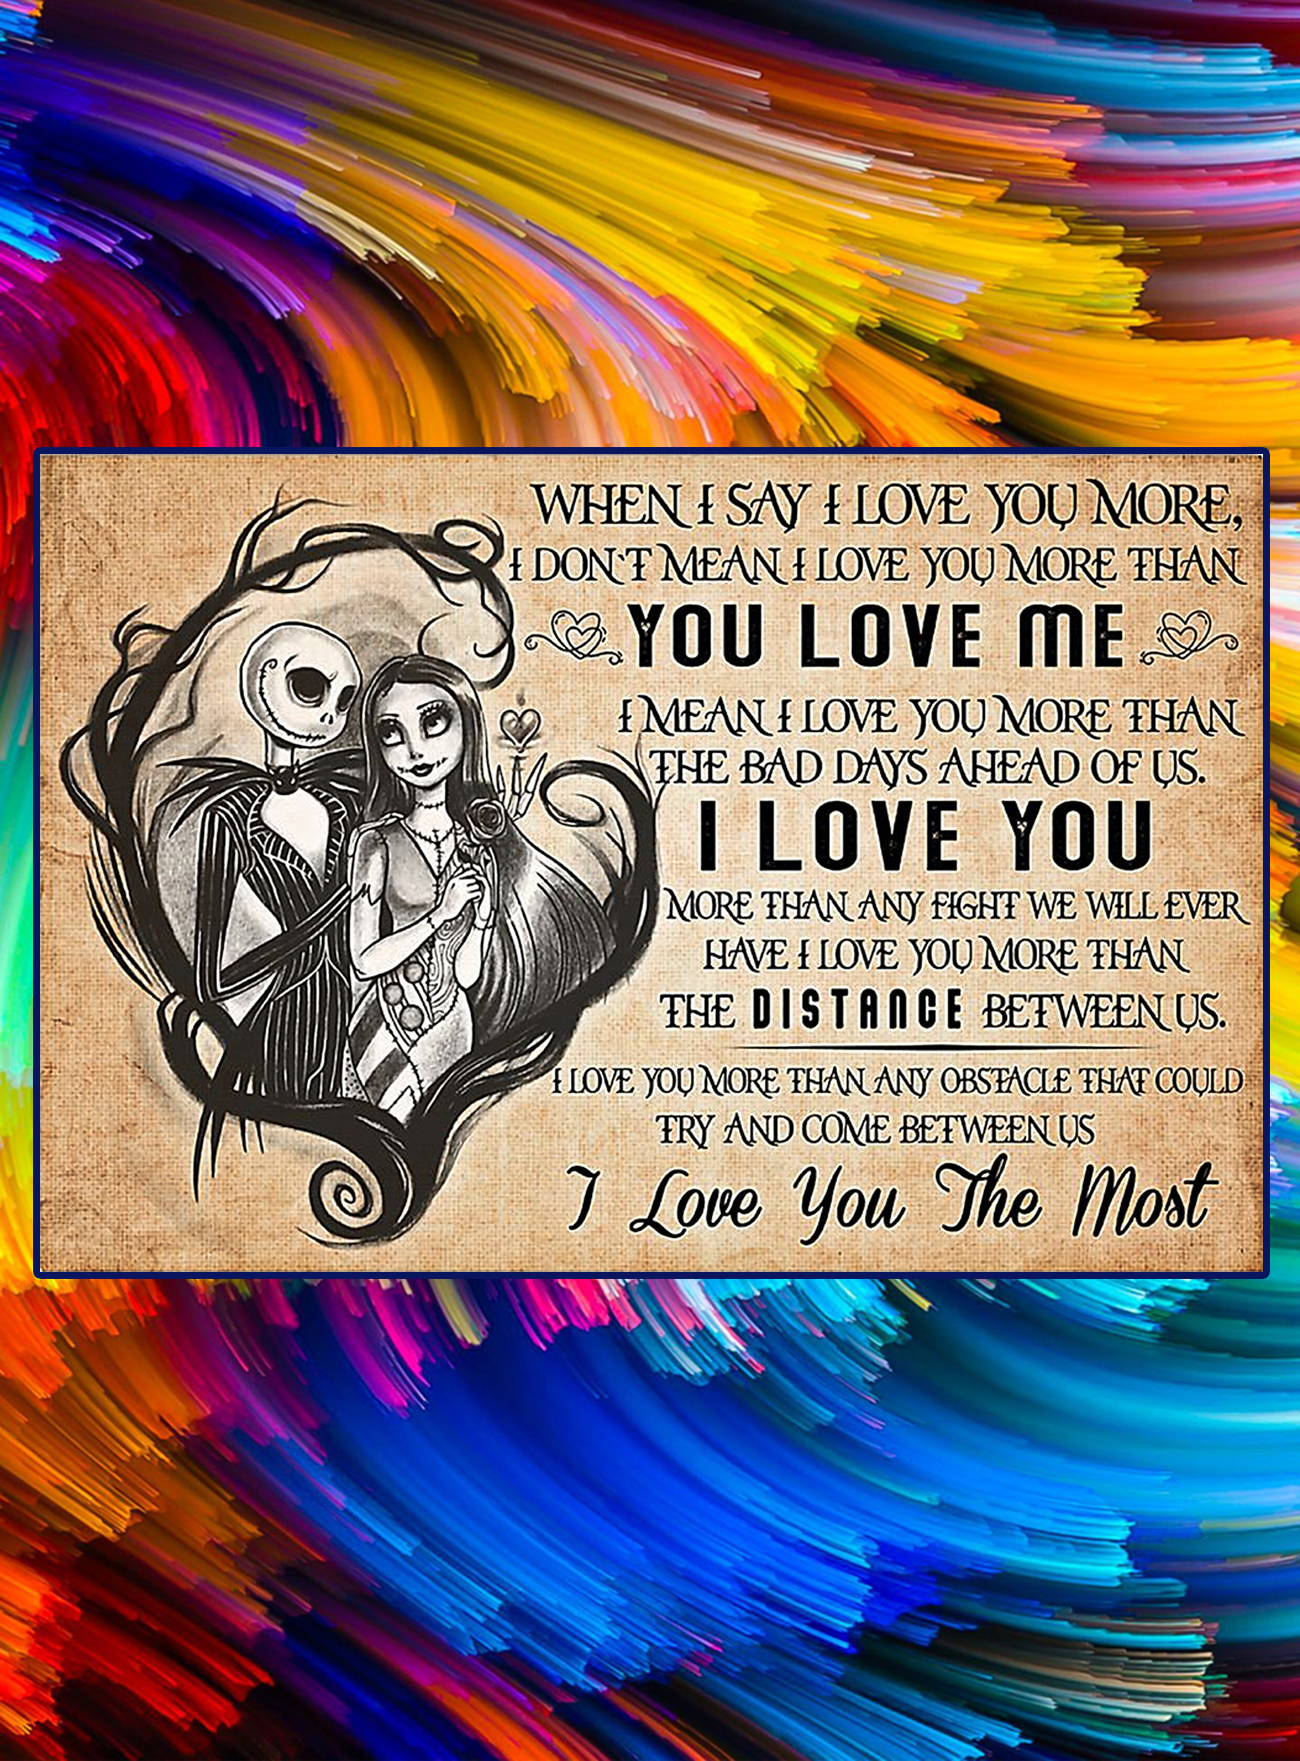 Jack and sally when I say I love you more poster